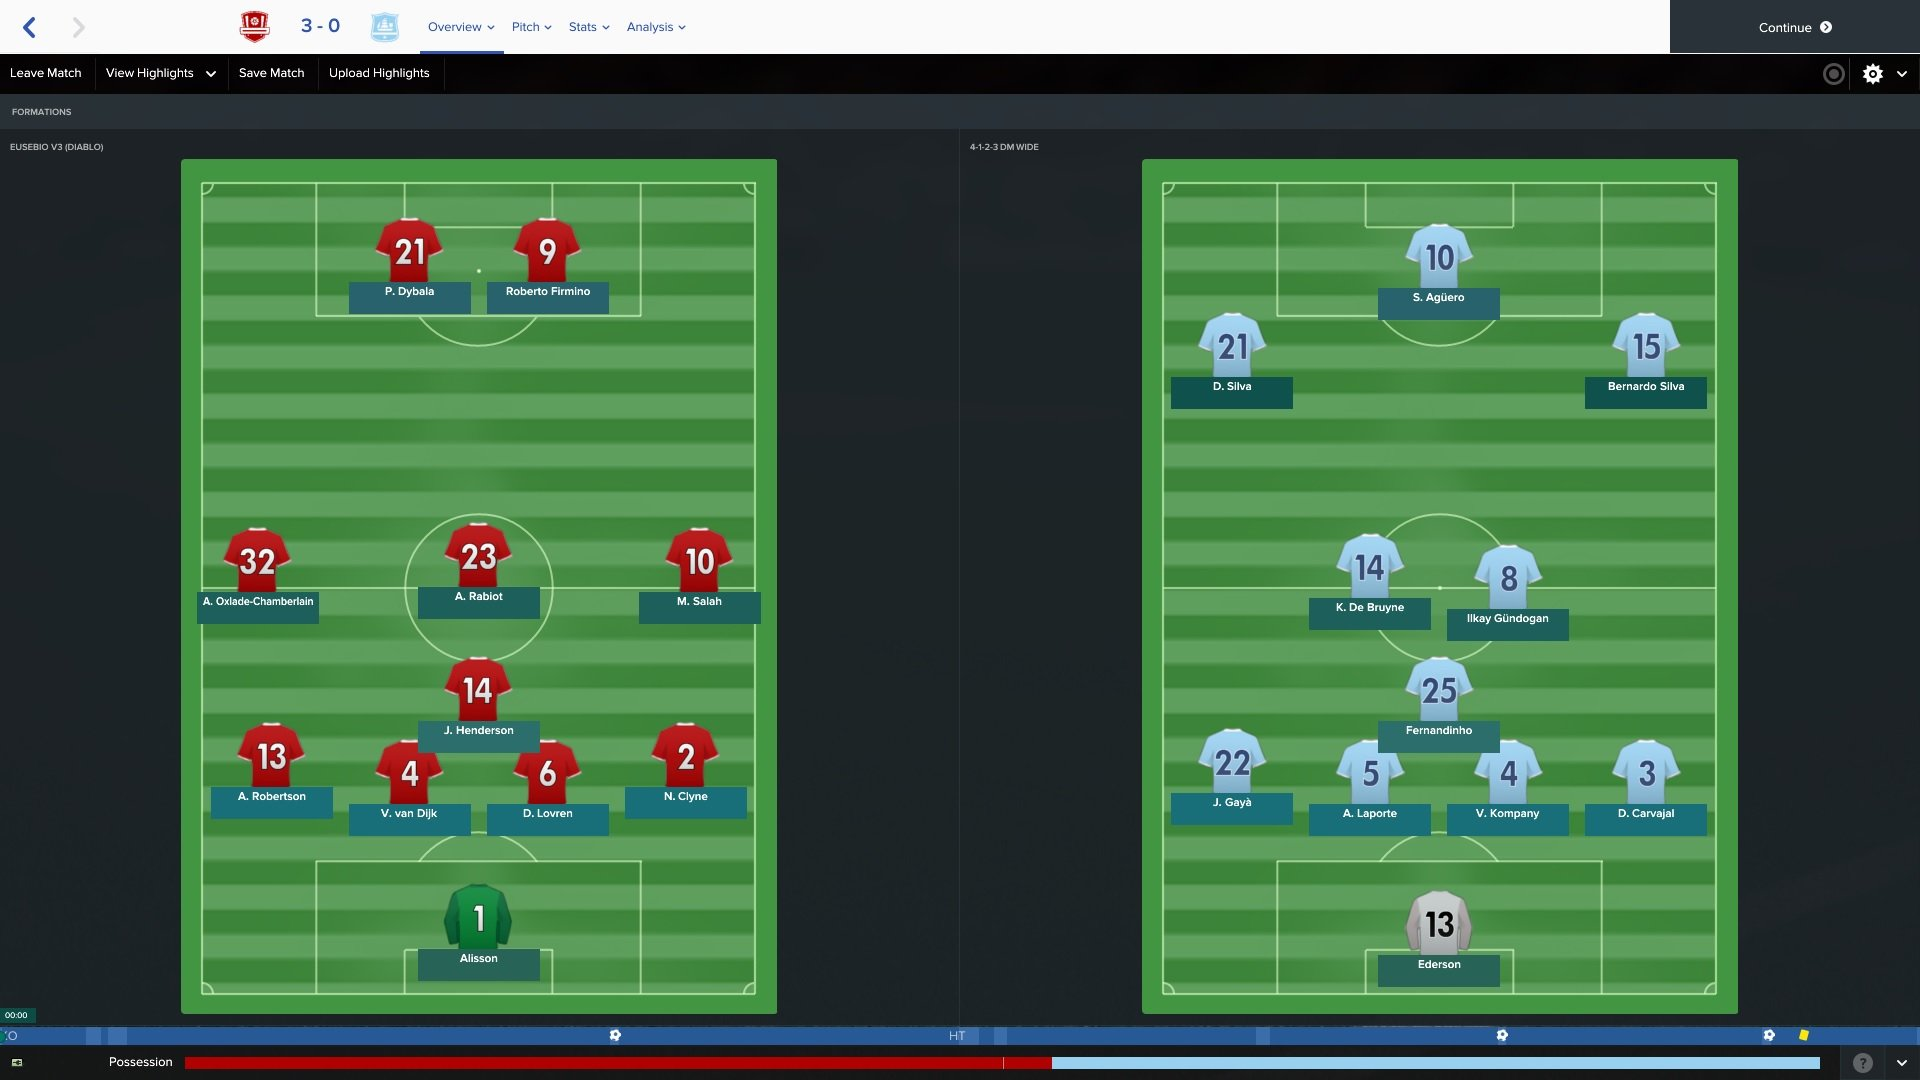 Diablo, Scramjet - supersystems live on - Football Manager General